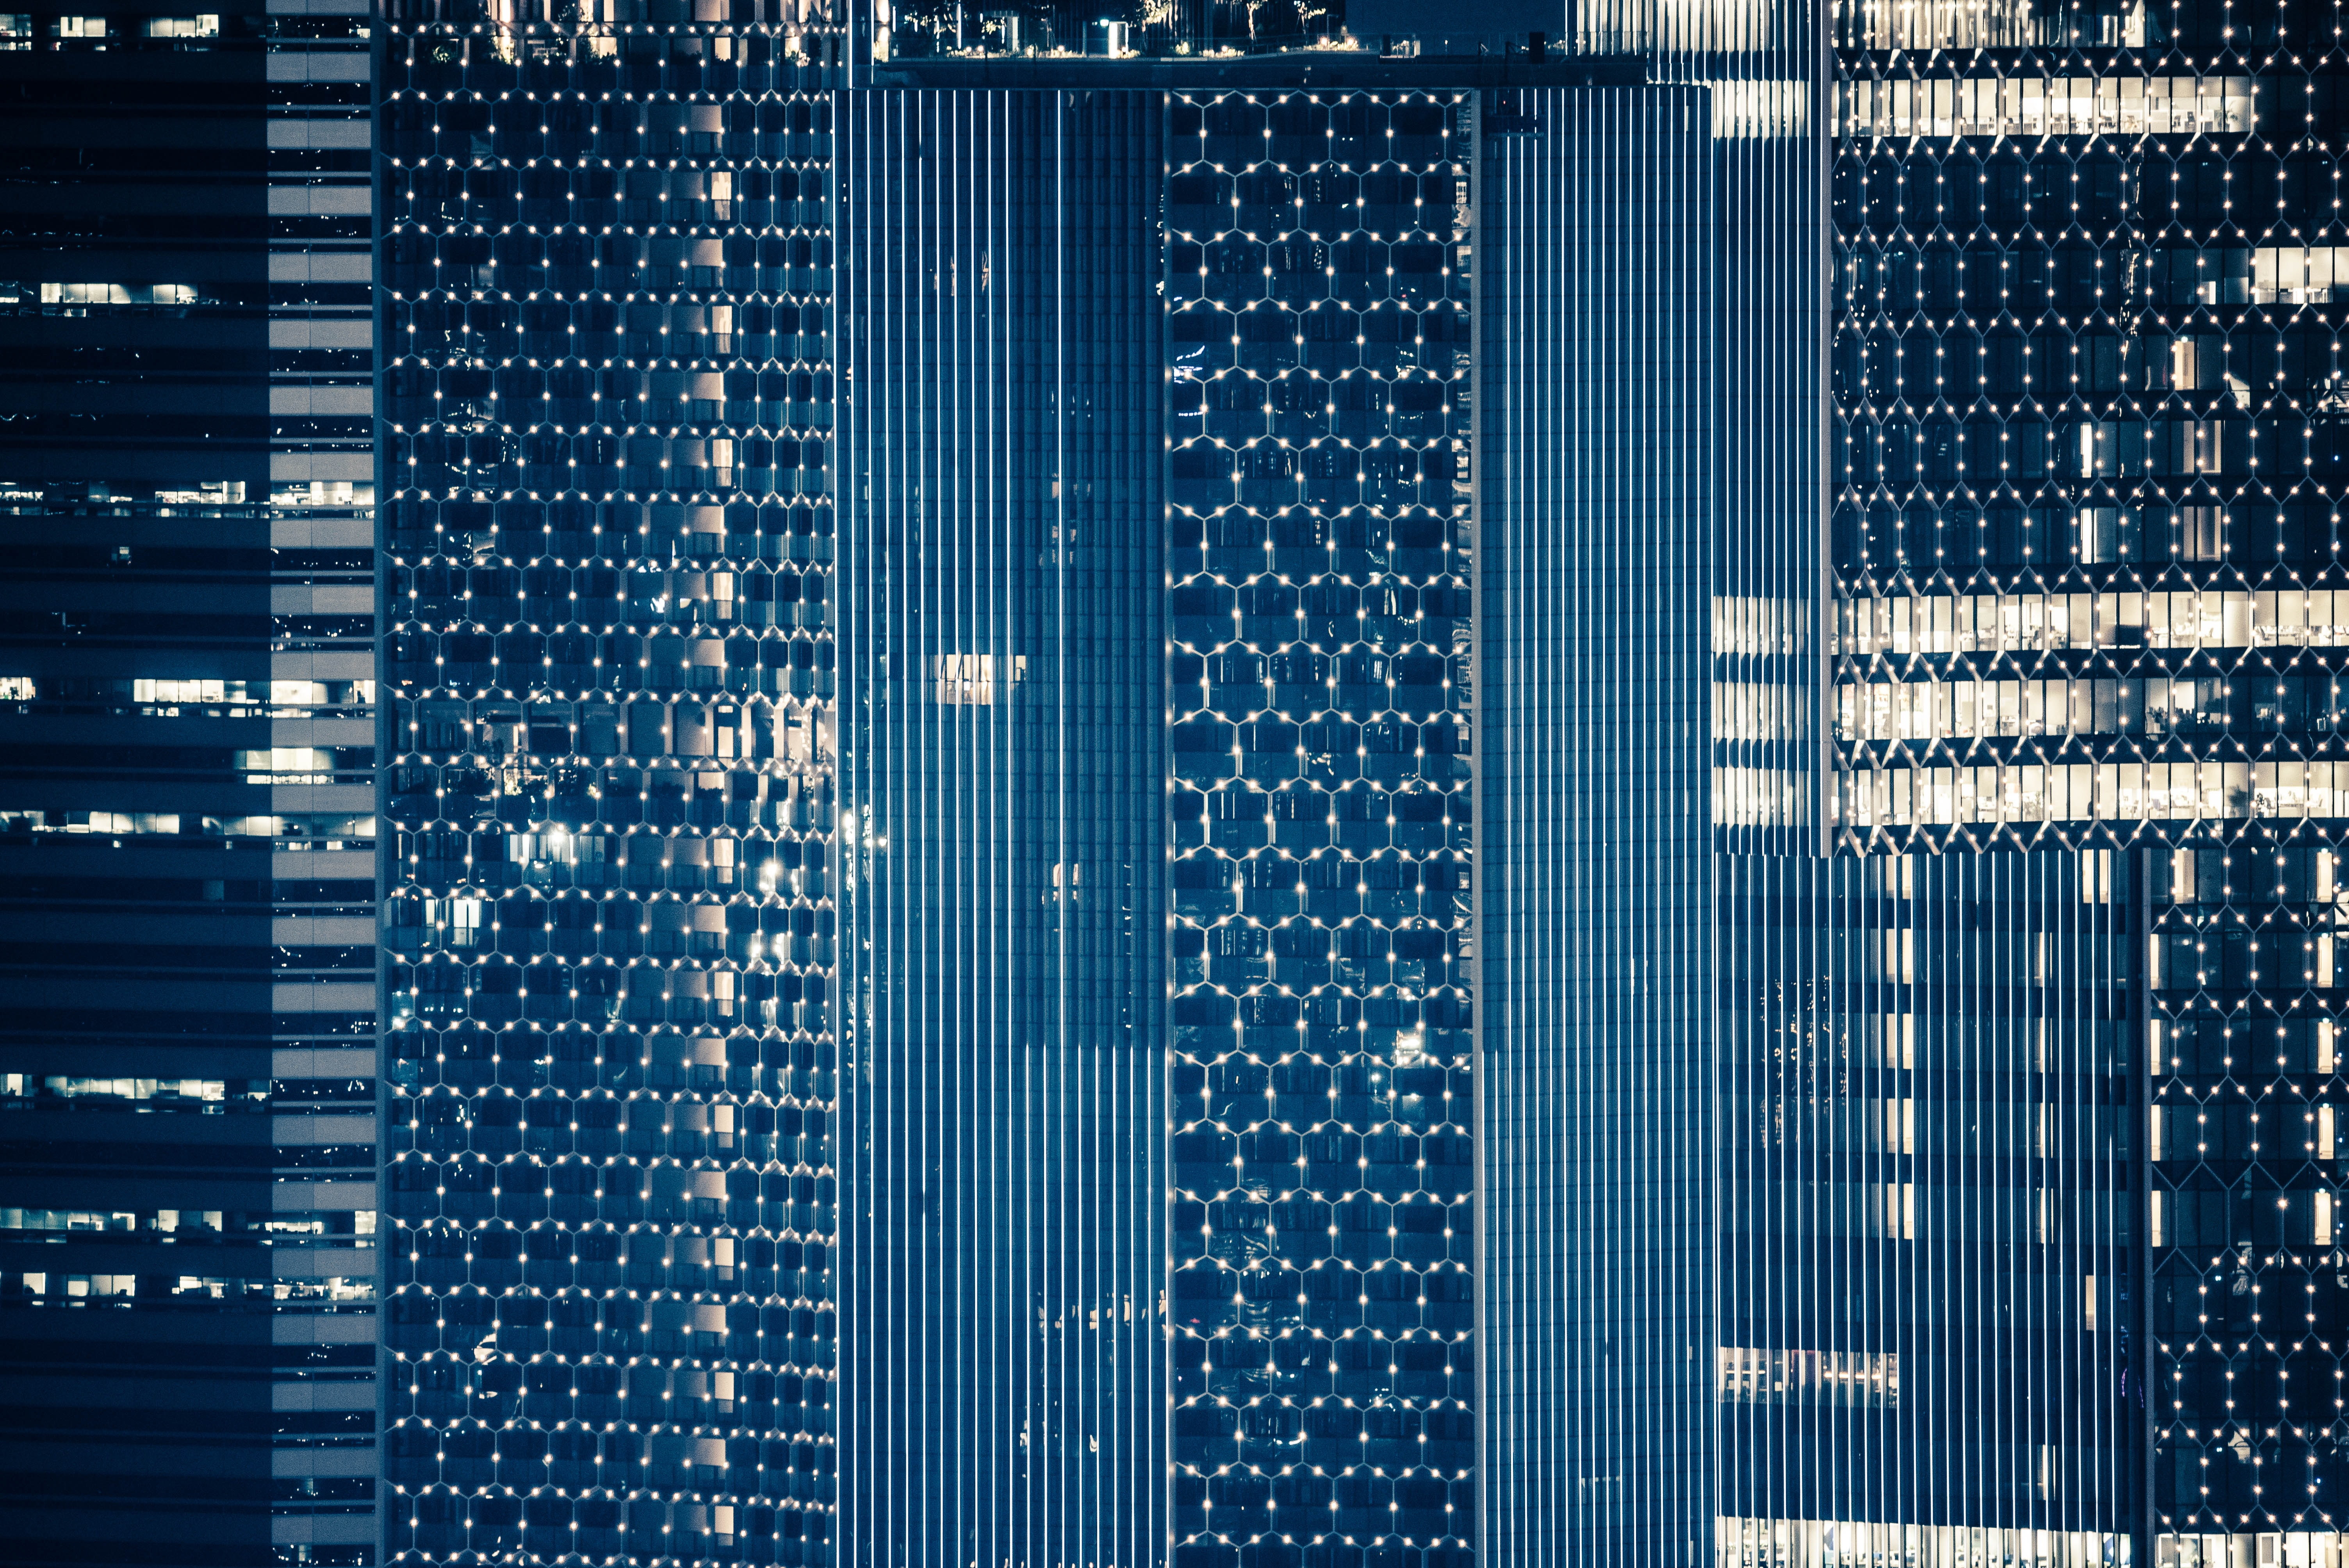 Macro of skyscraper's windows that are framed by light in honeycomb pattern